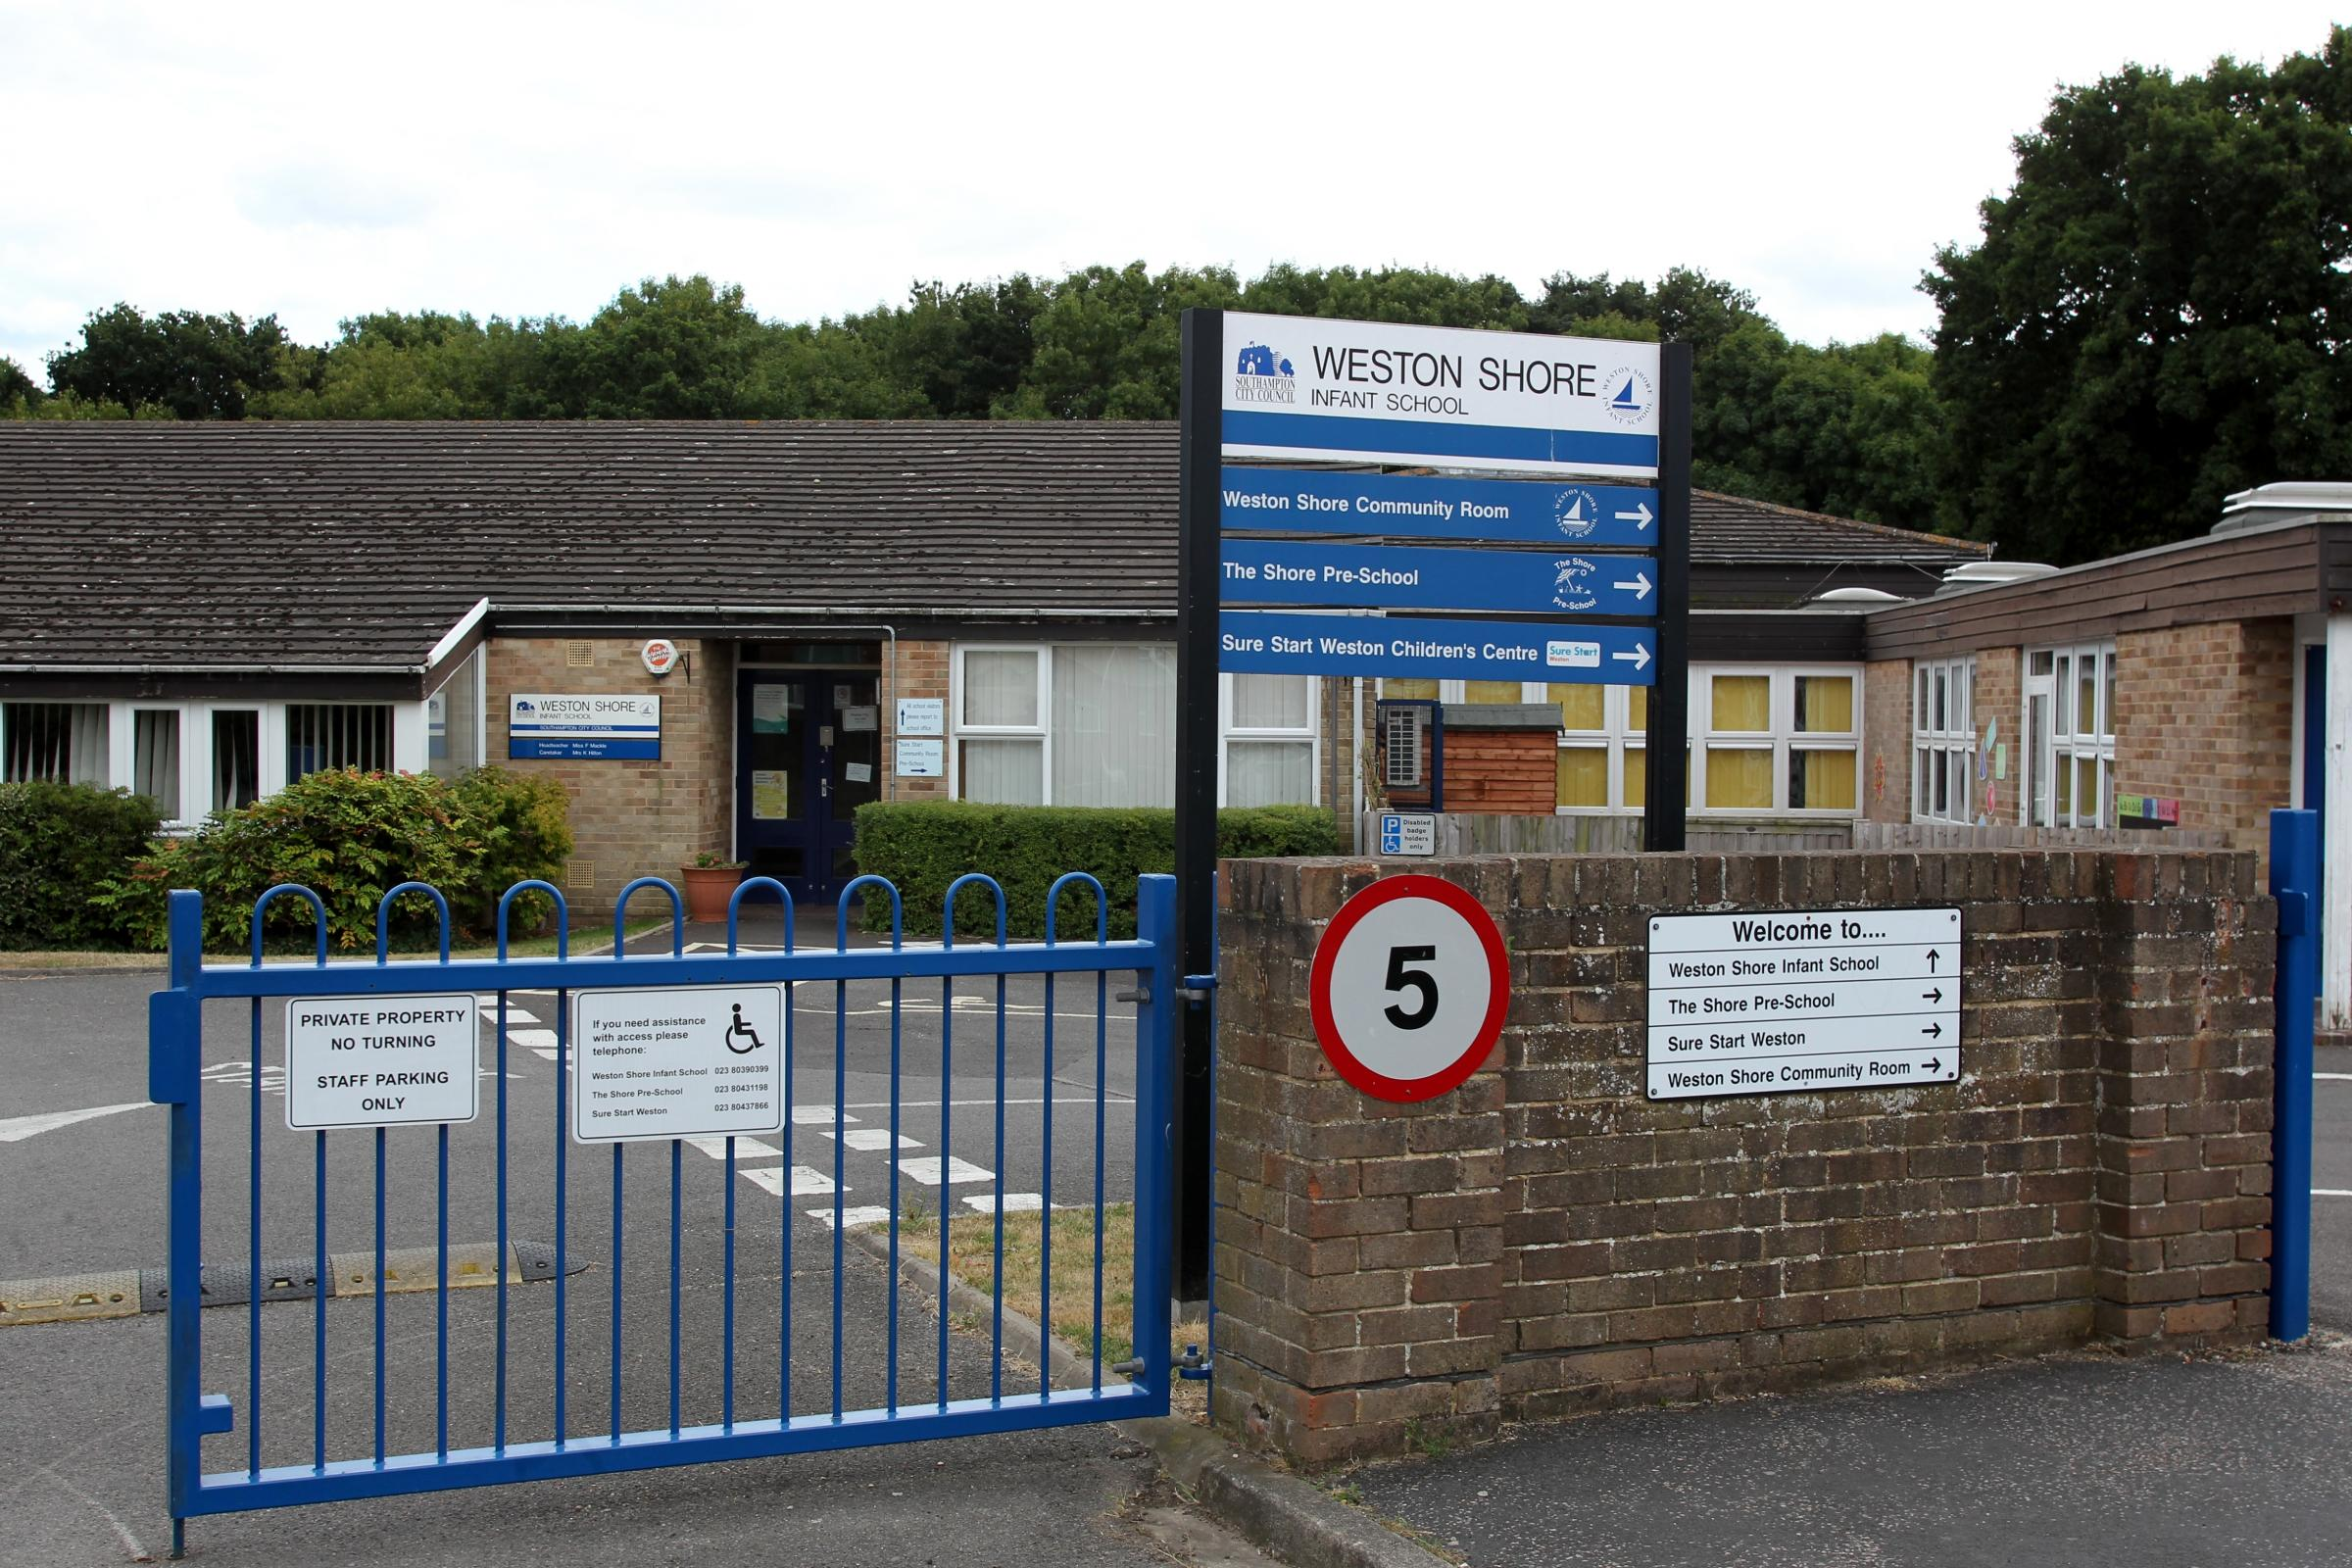 Exterior, Weston Shore Infant School, Weston         Tuesday 13th August 2013